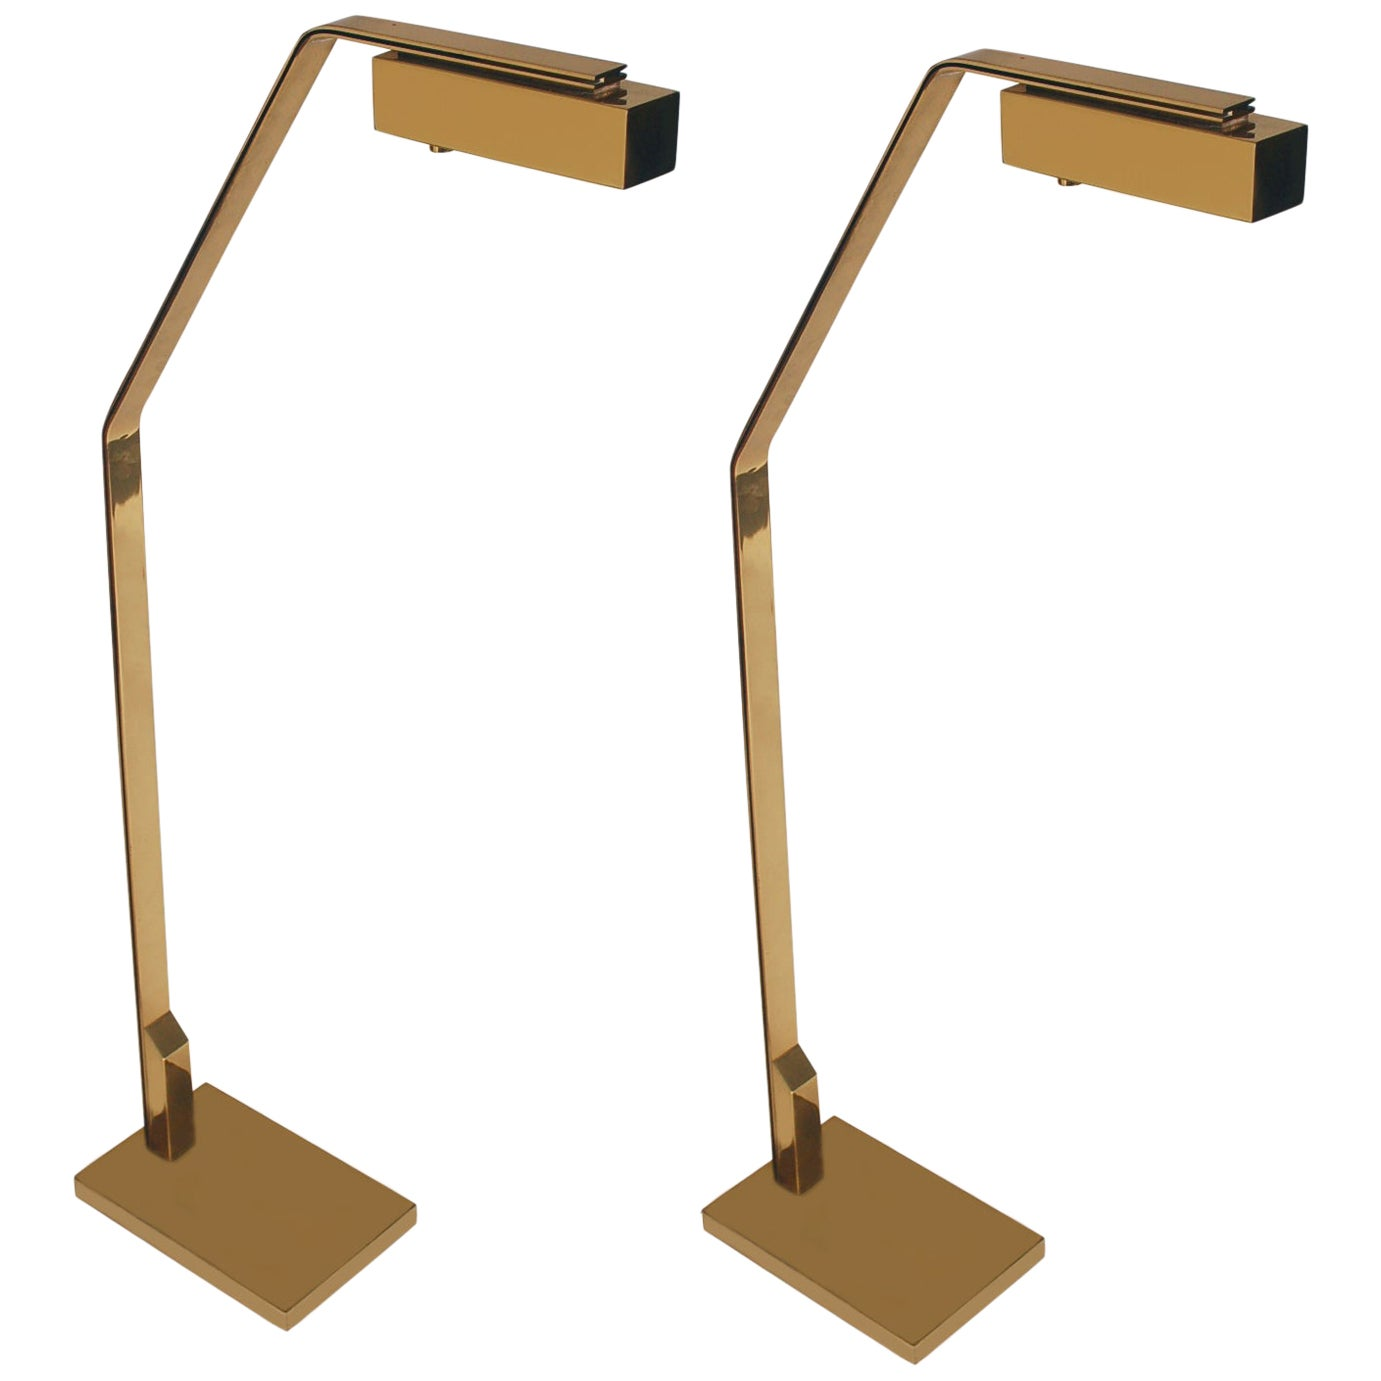 Pair of Midcentury Italian Modern Polished Brass Reading Floor Lamps by Casella